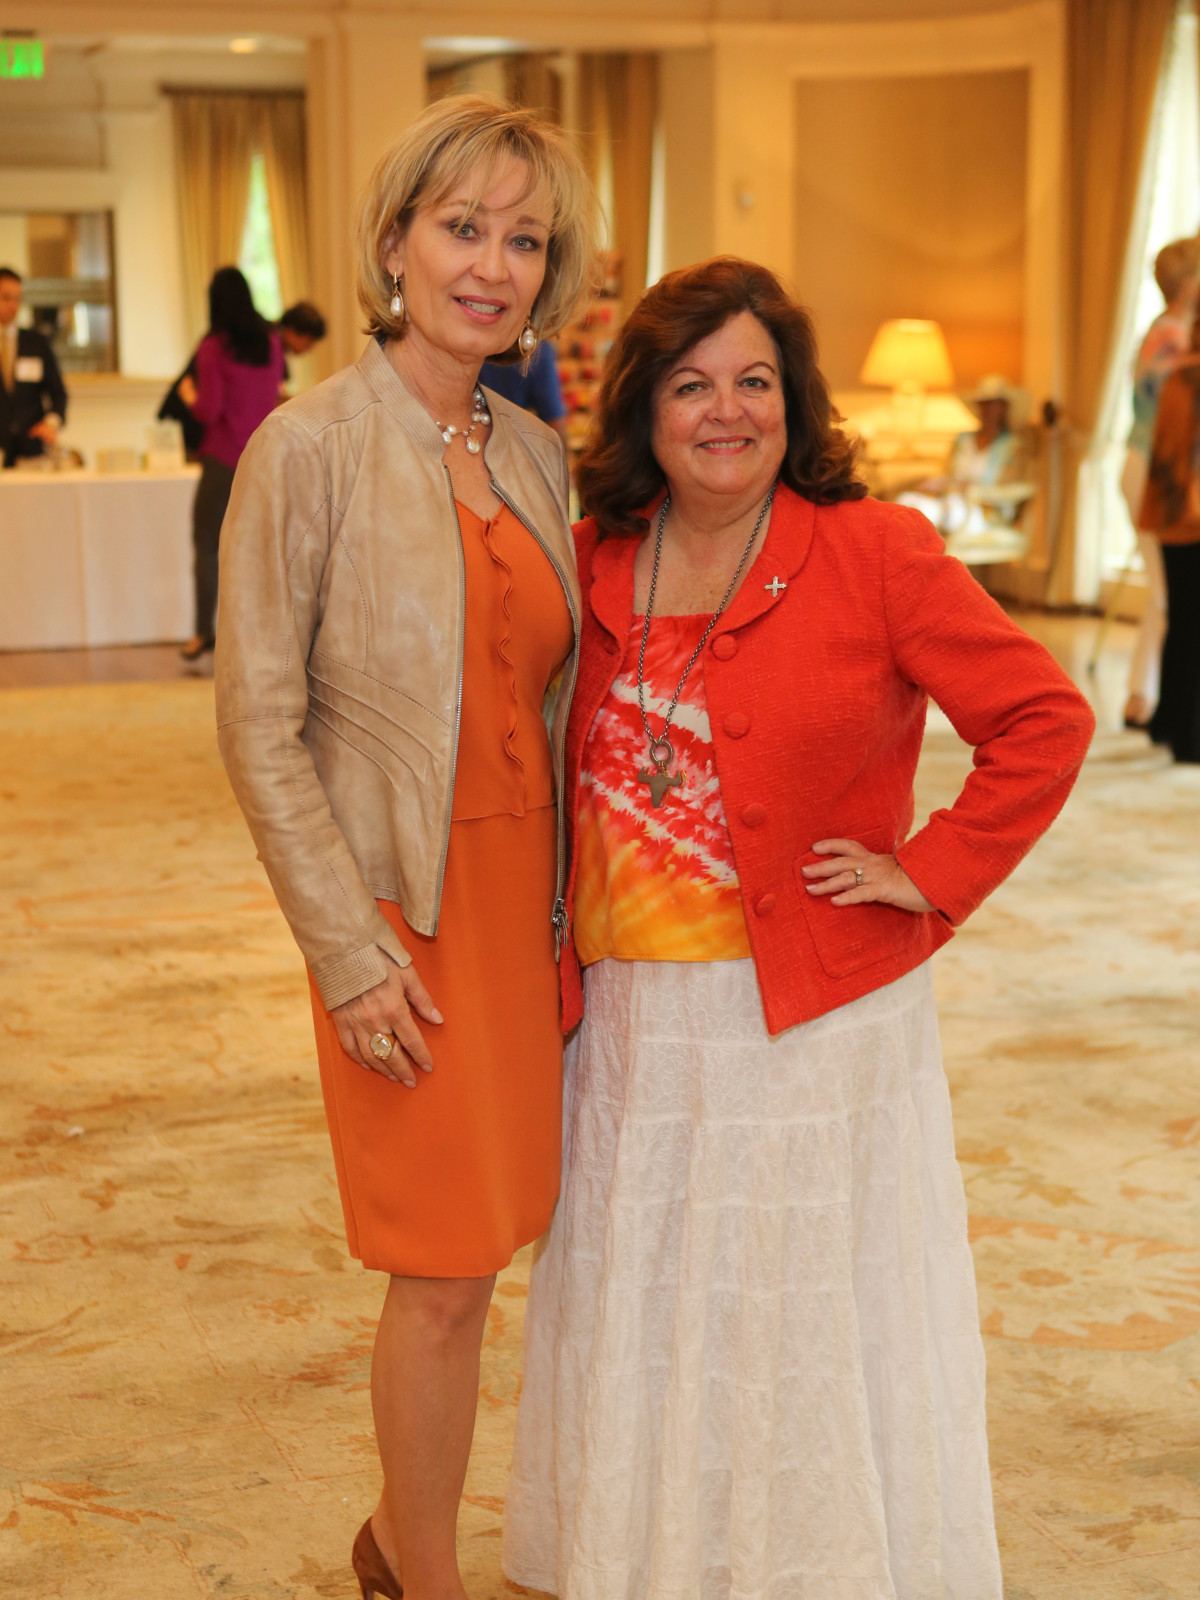 Partners Luncheon 4/16, Cathy Borlenghi, Carolyn Moody Drake